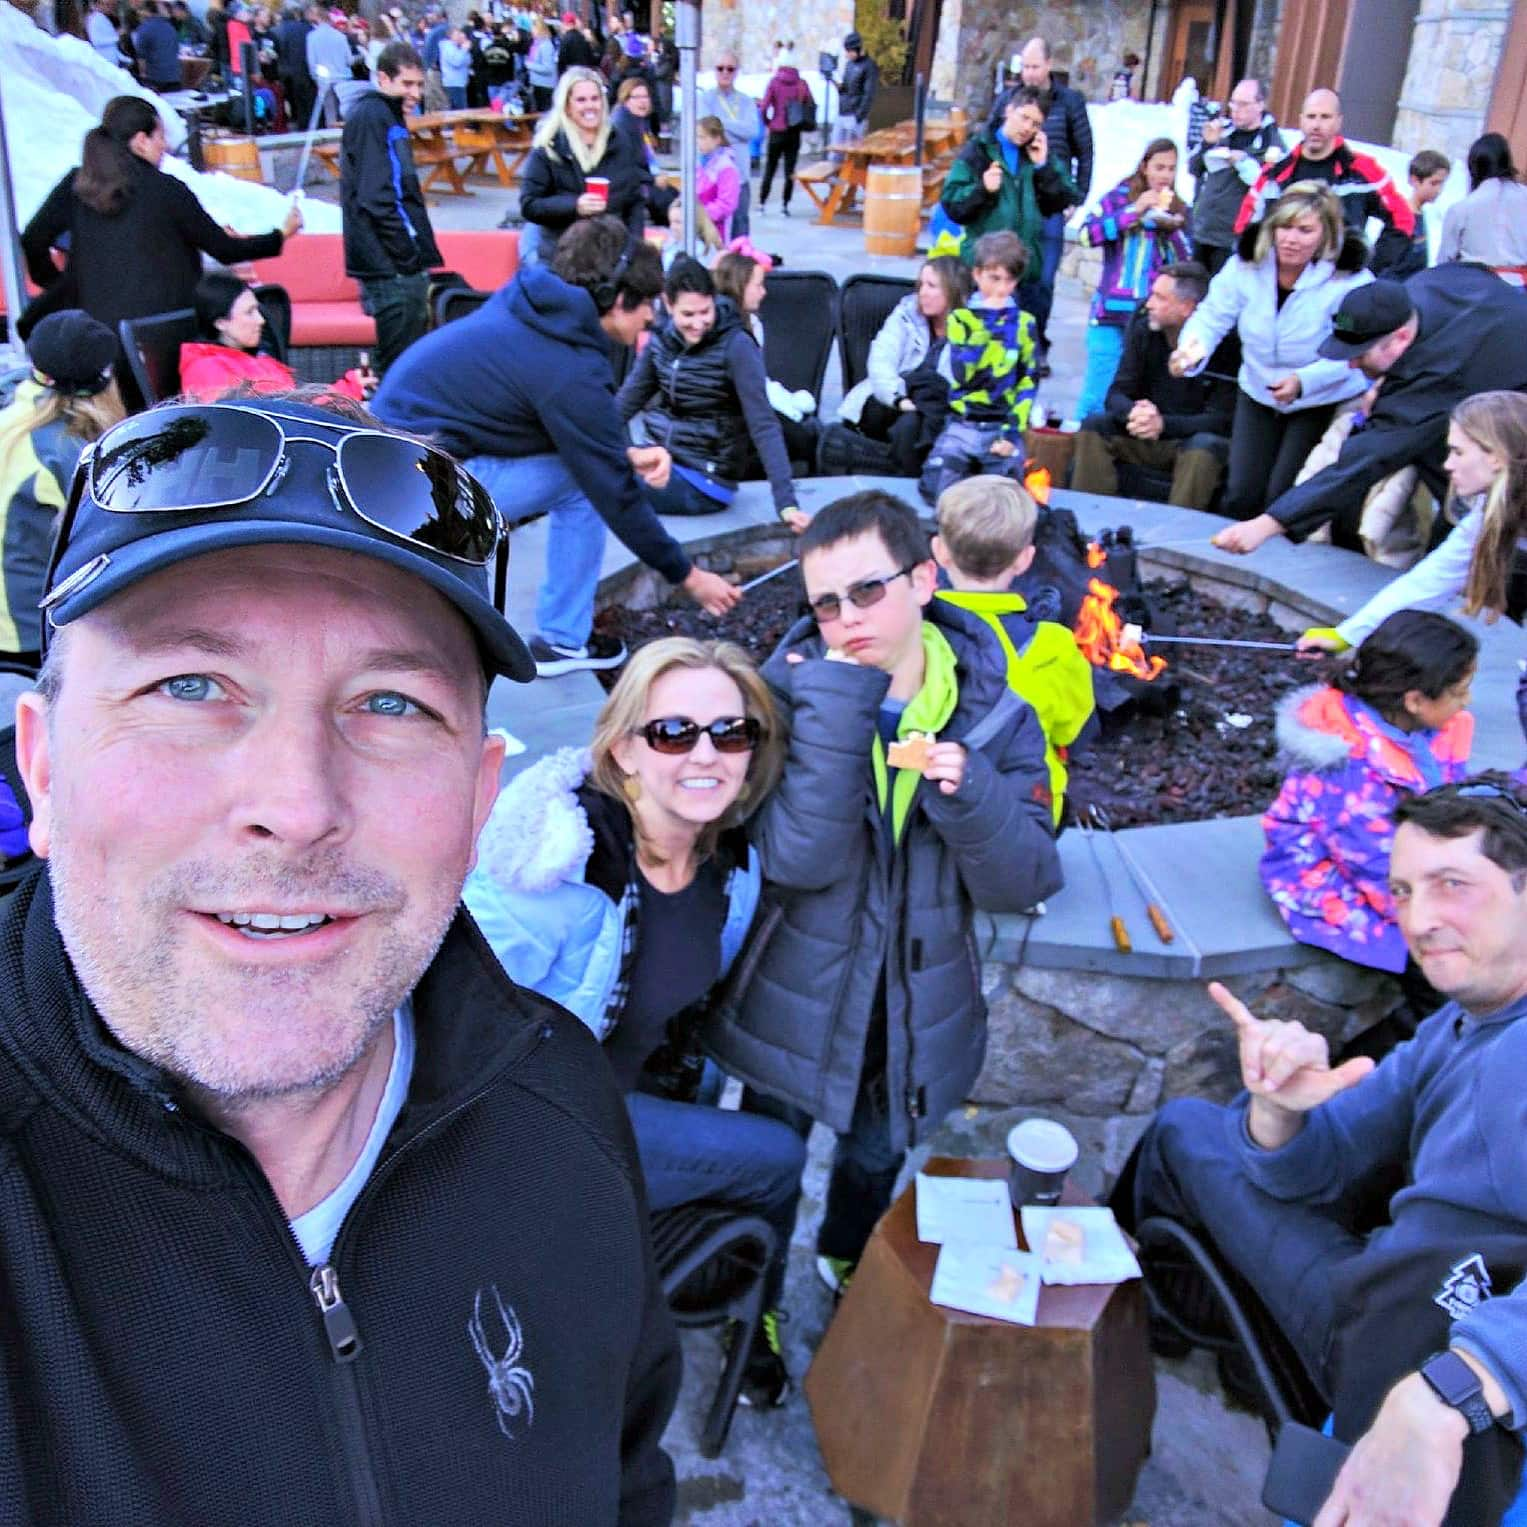 A family selfie at Northstar Ski Resort with kids